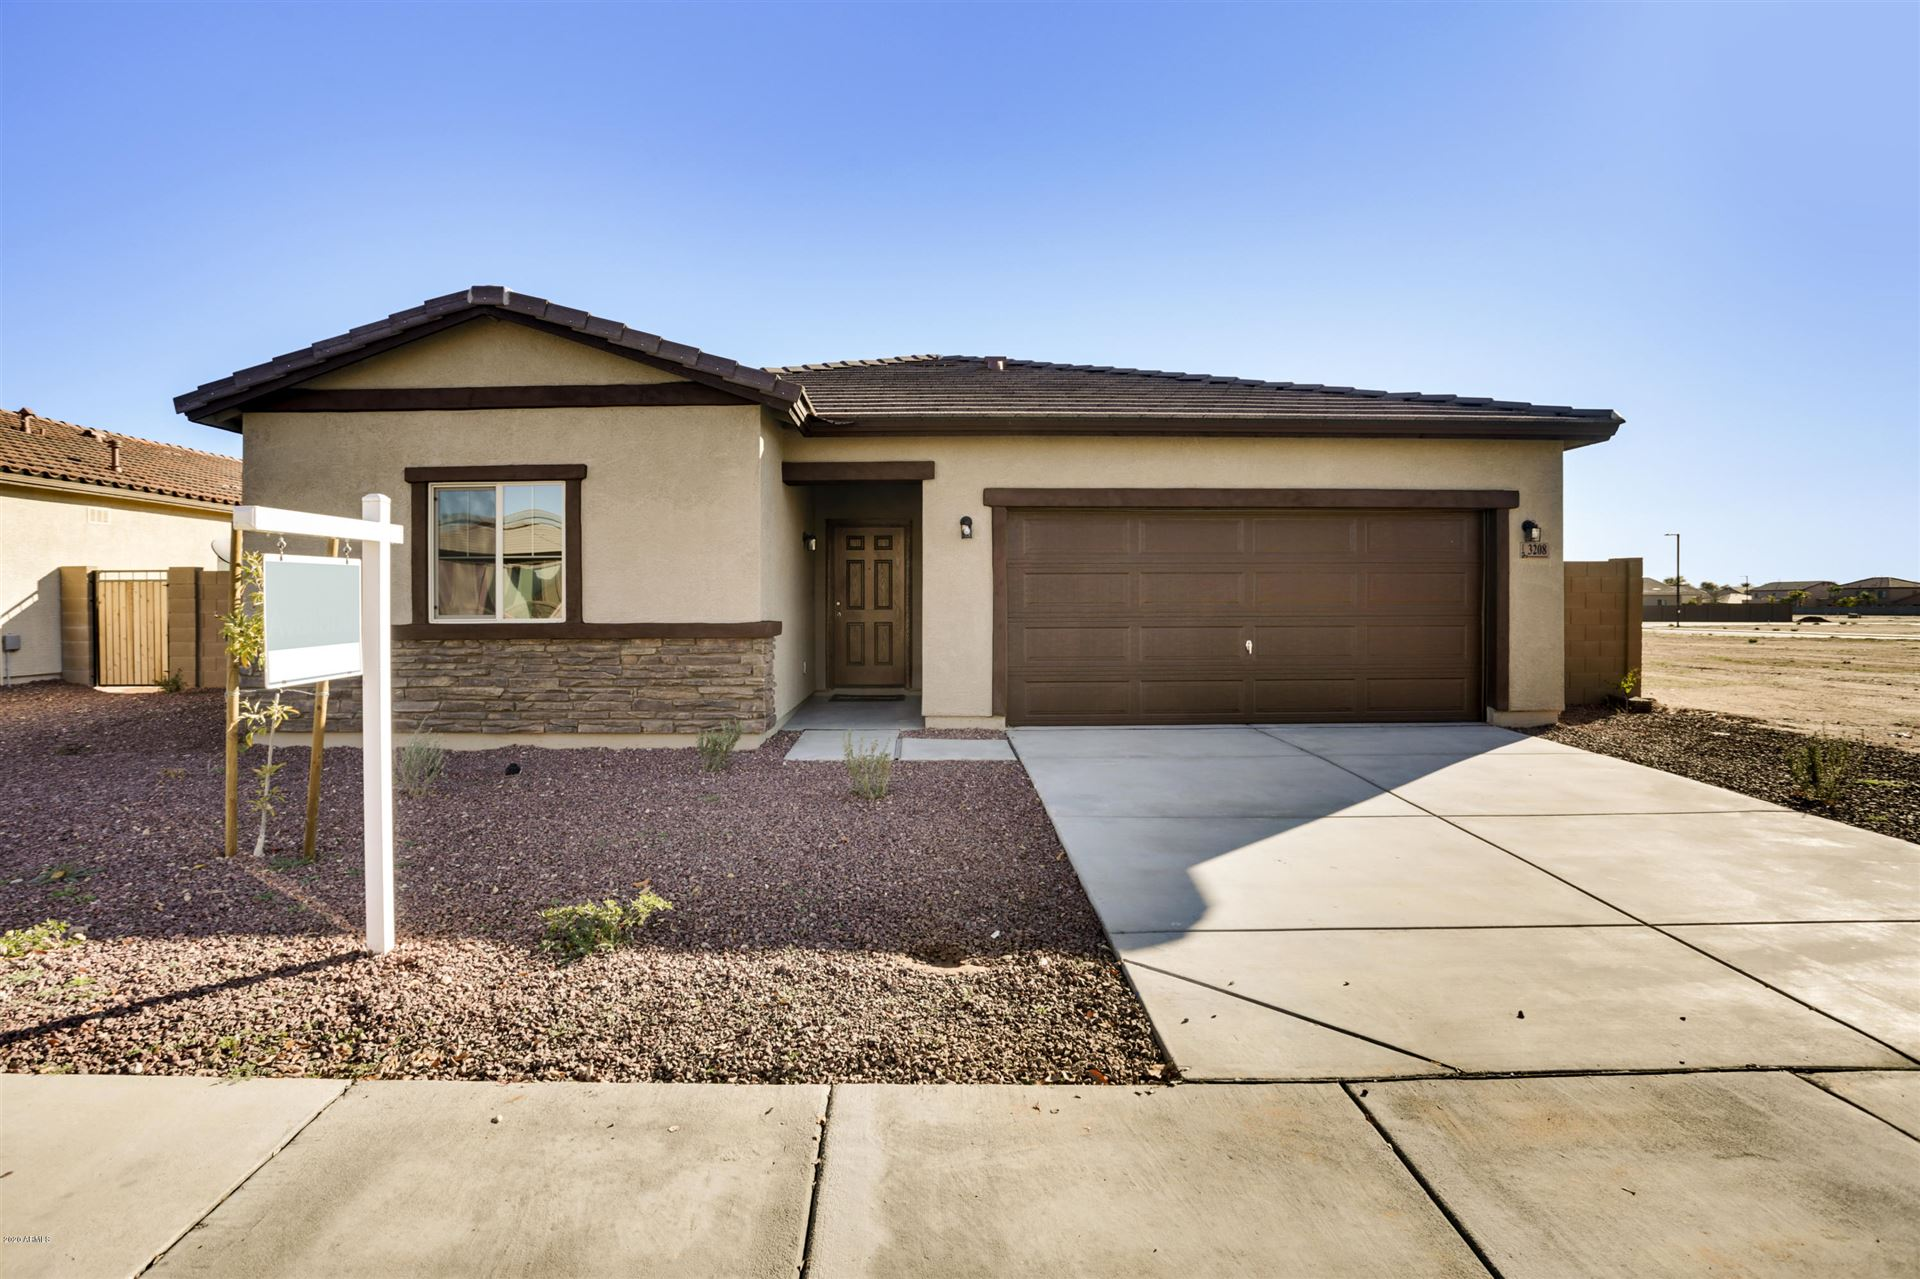 3208 N PLEASANT VIEW Lane, Casa Grande, AZ 85122 - MLS#: 6025521